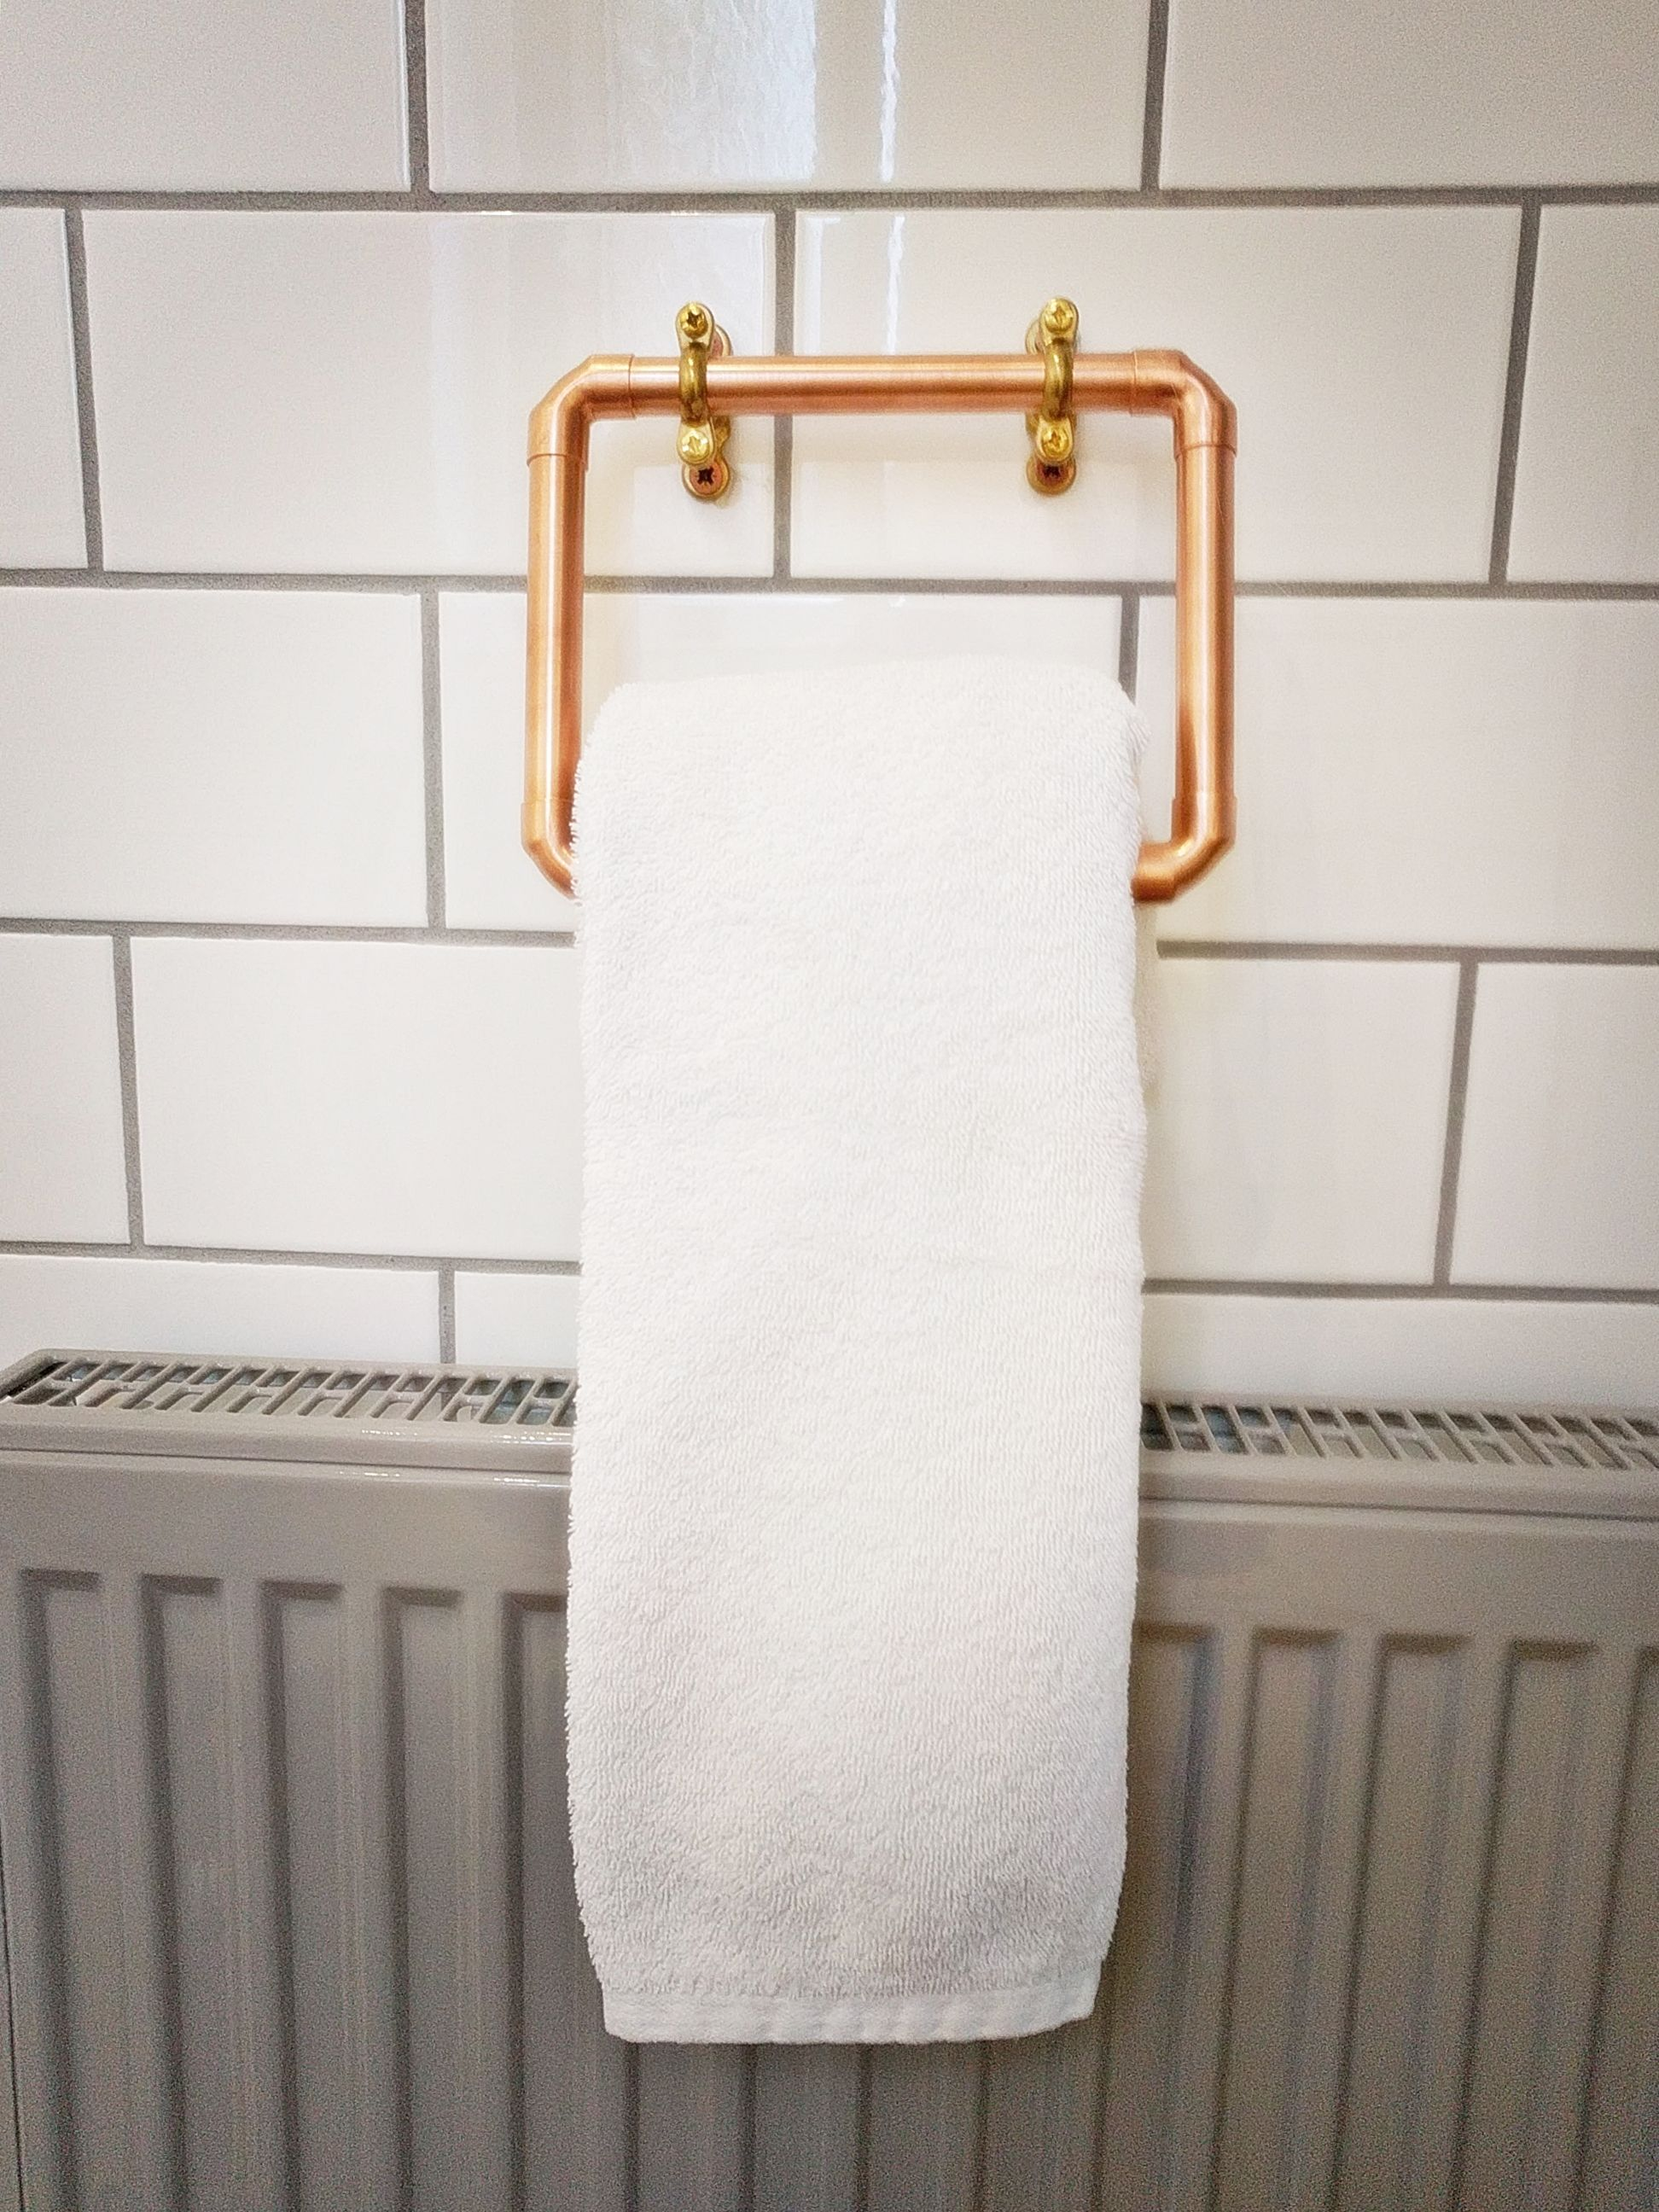 Hand Towel Holder A Real Steam Punk Statement Piece Copper Bathroom Accessories Hand Towel Holder Rustic Towels